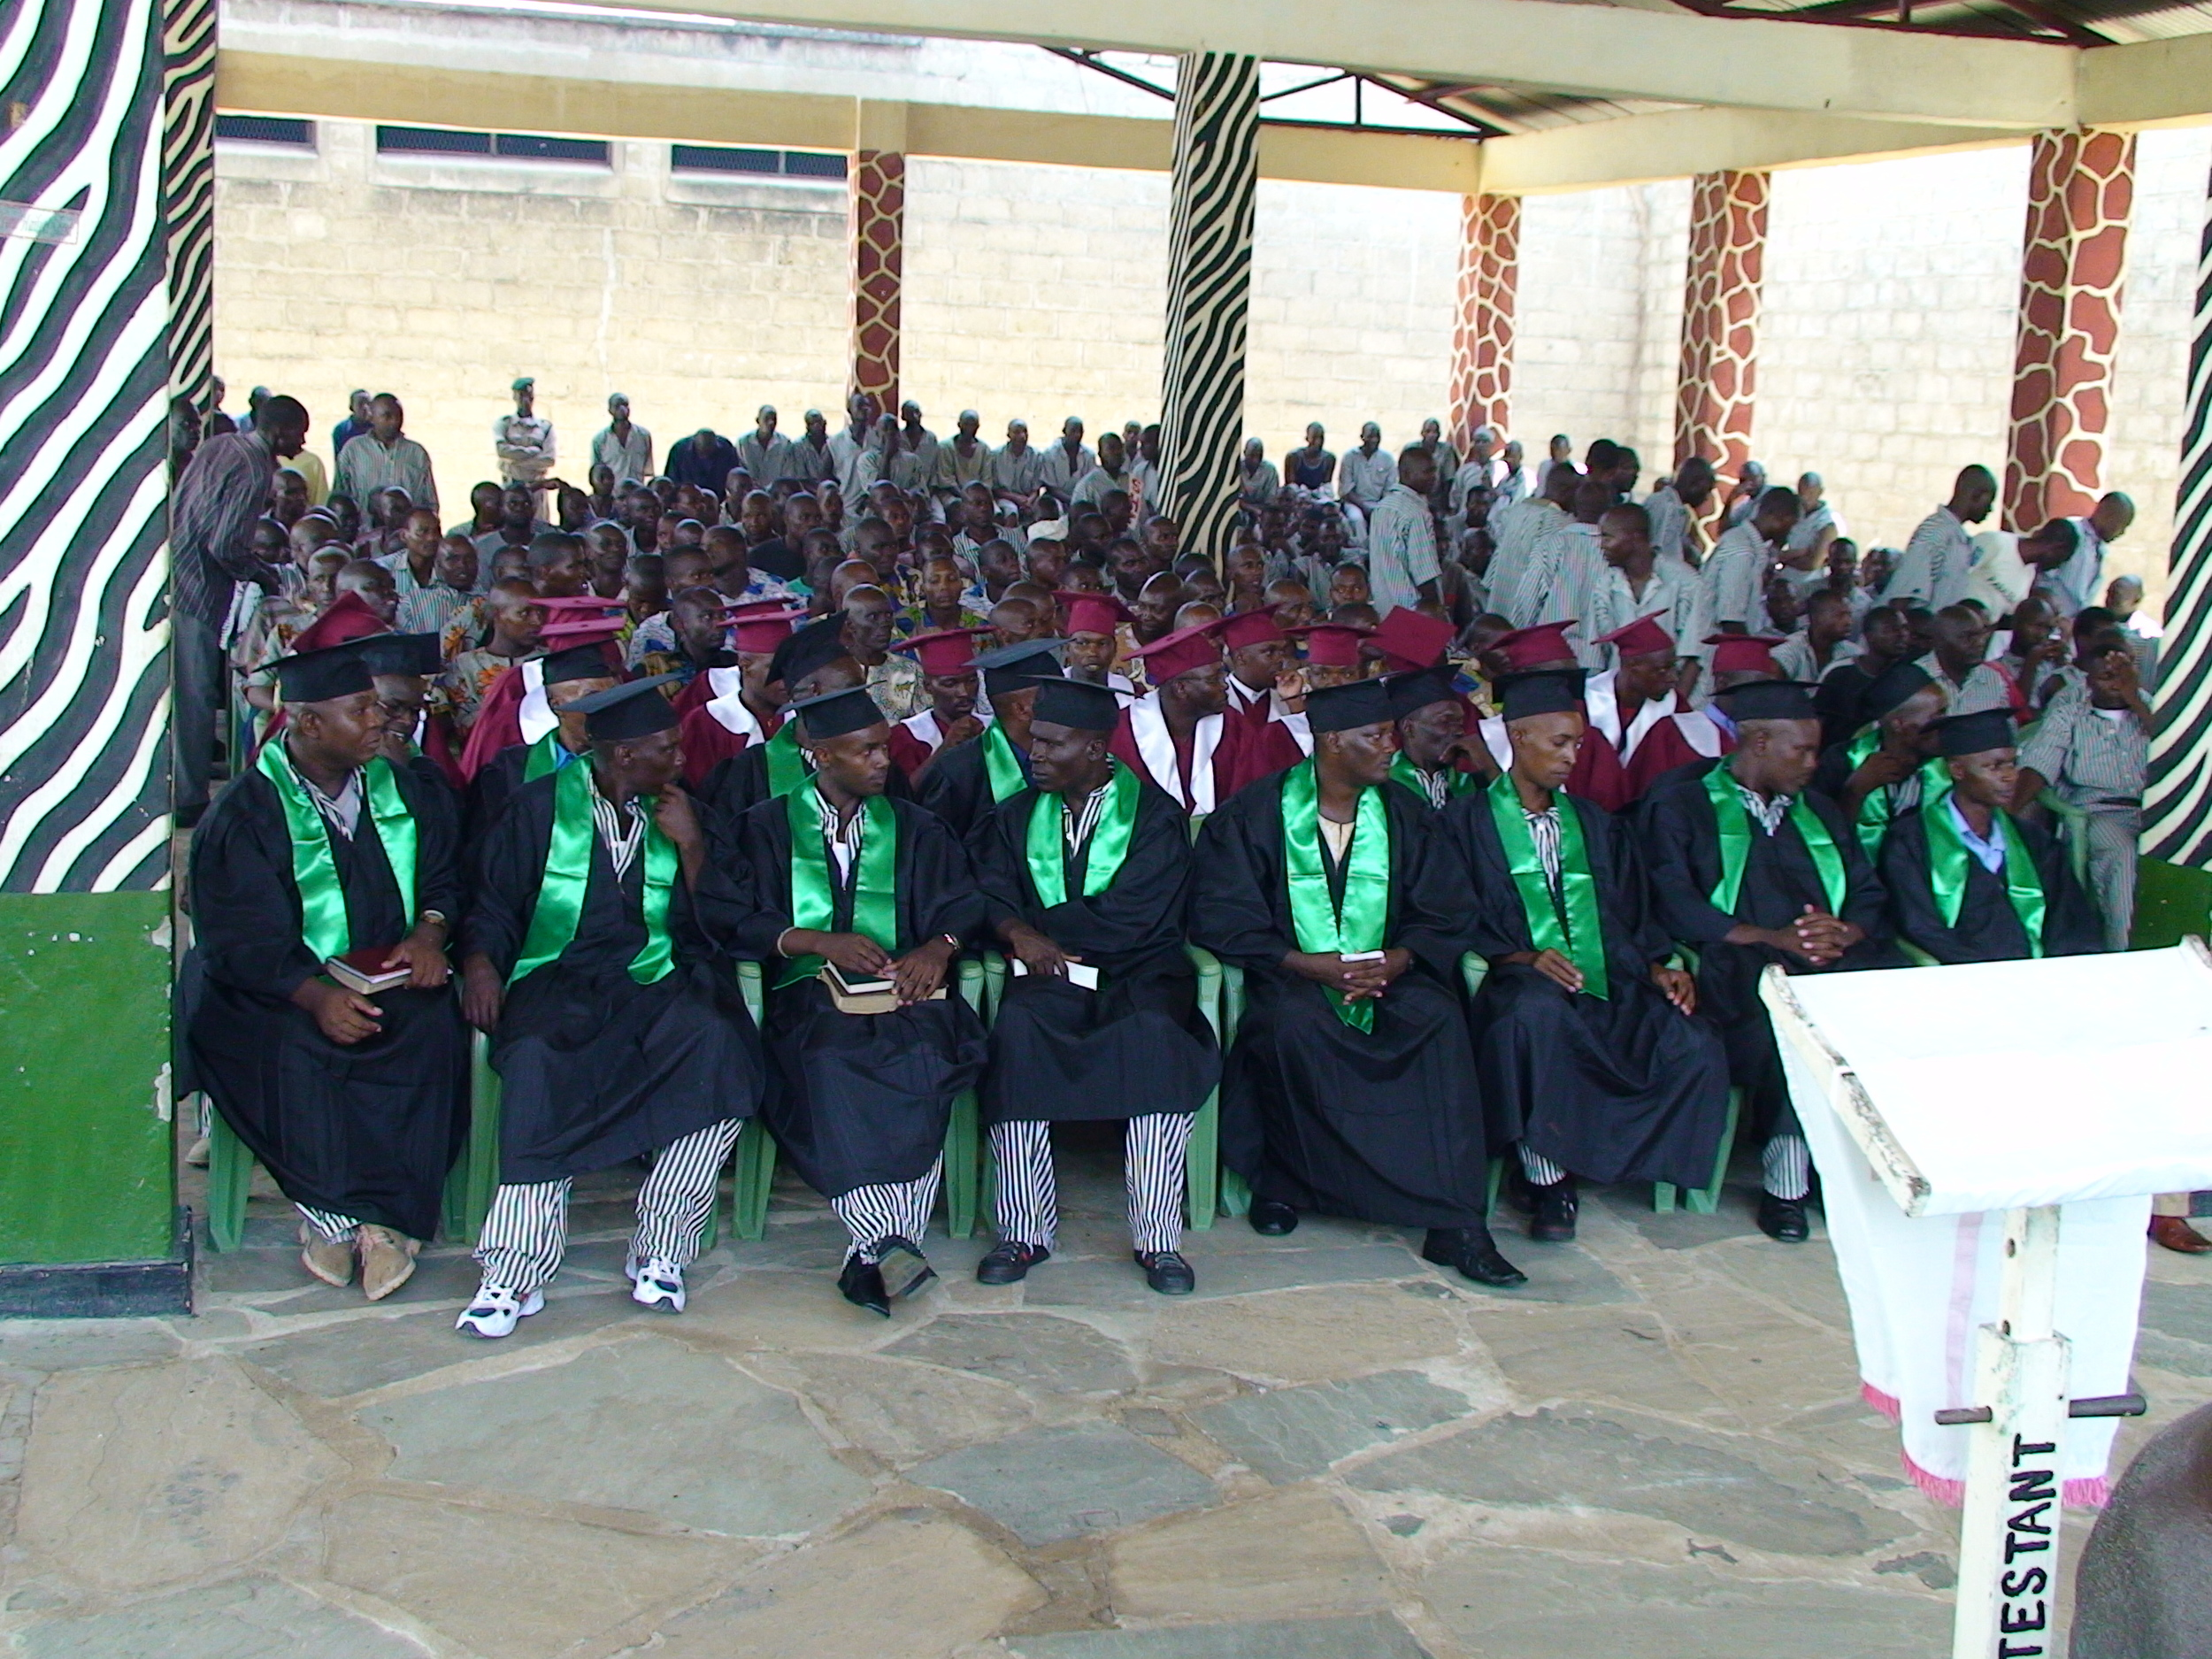 The Industrial Area Correction Facilities' graduation after completing Alpha.